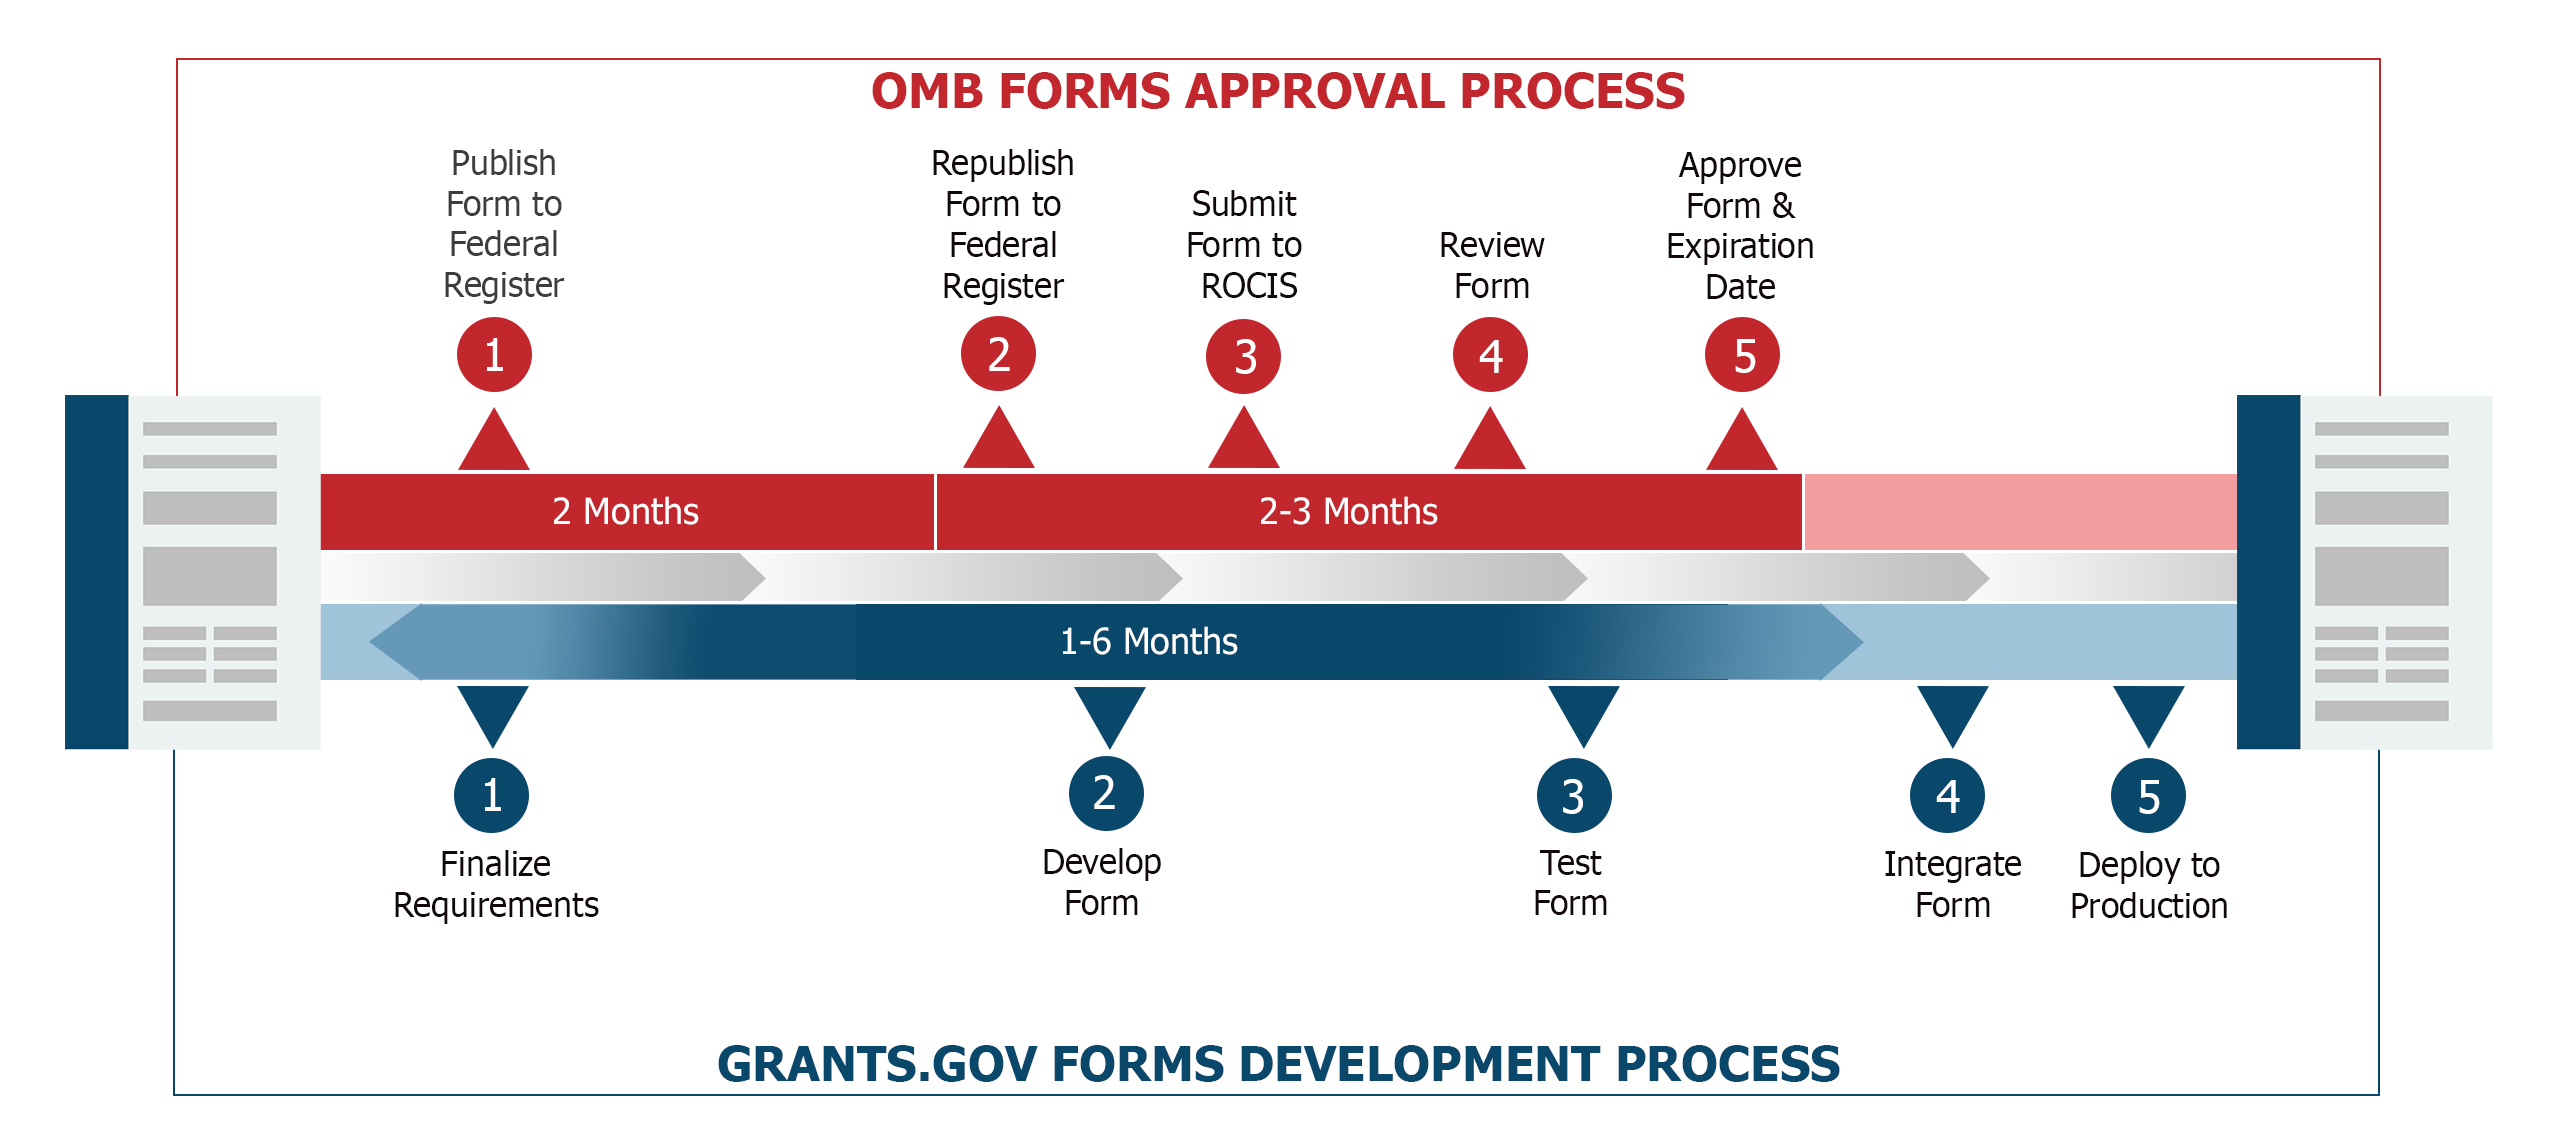 Grants.gov Forms Approval and Development Processes